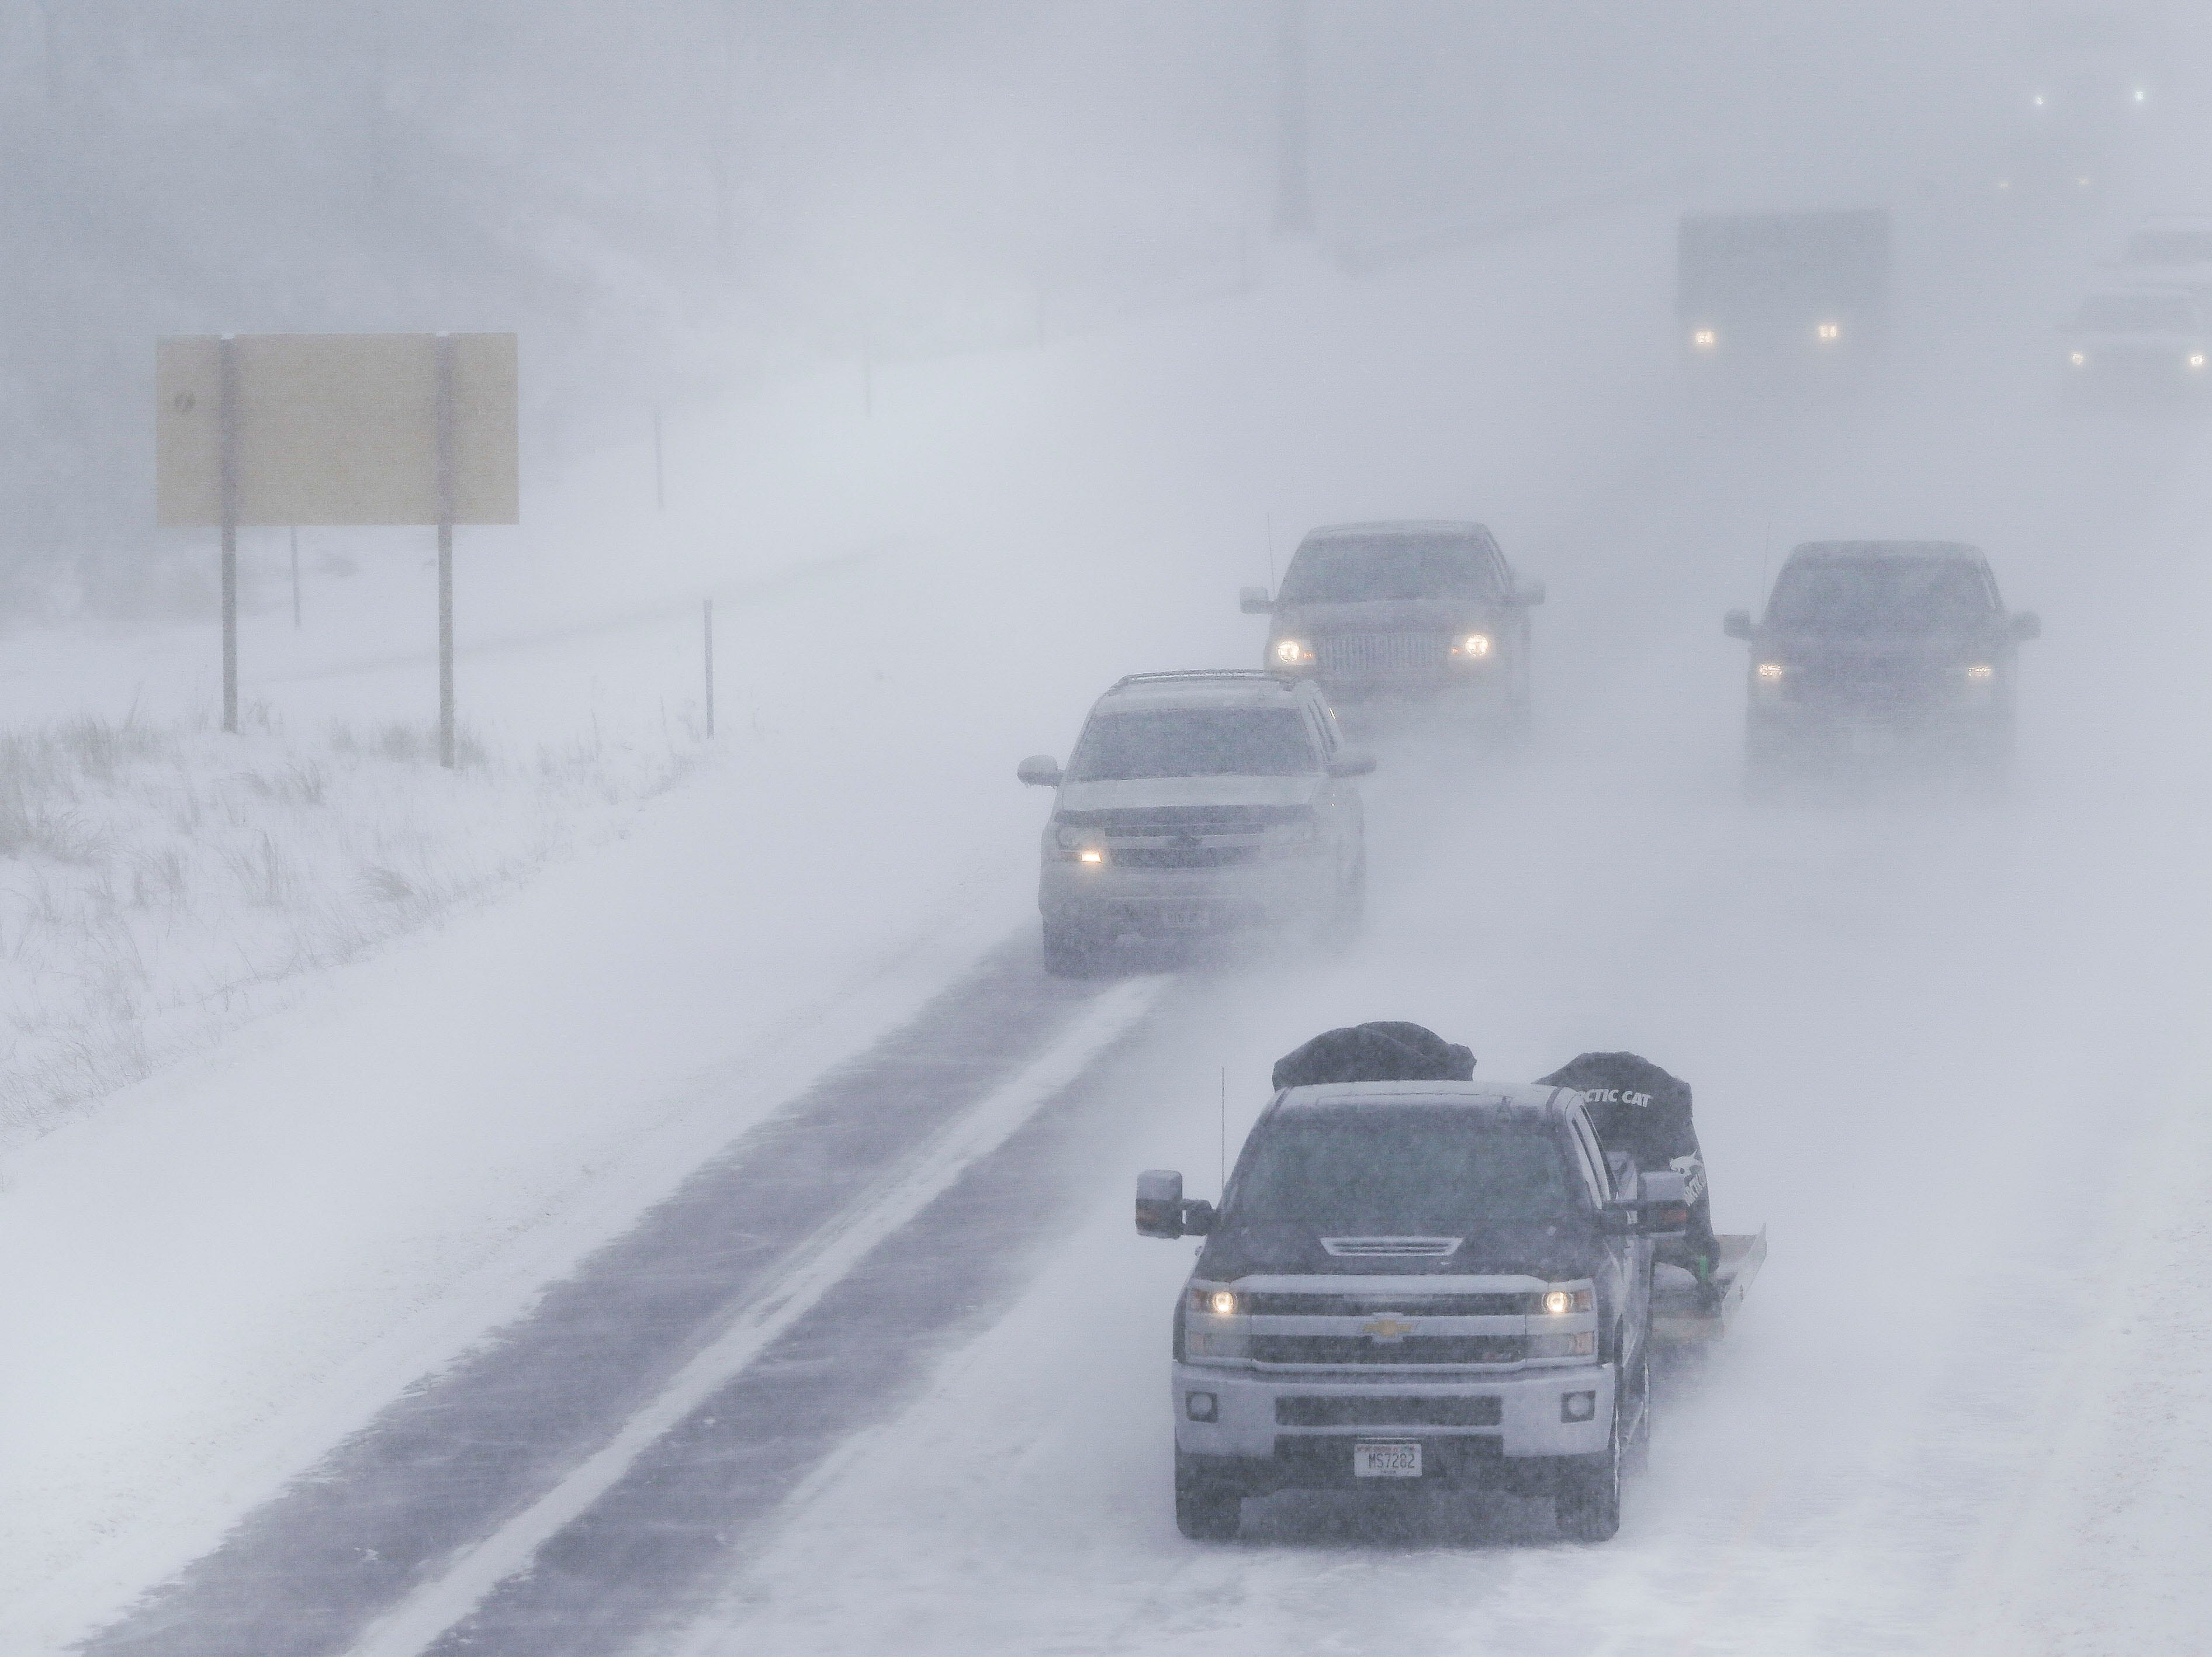 Traffic flows through whiteout conditions on Thursday, February 7, 2019, on Interstate 39 in Stevens Point, Wis. A winter storm is expected to drop 5-8 inches of snow in the area by the time it clears Thursday evening.